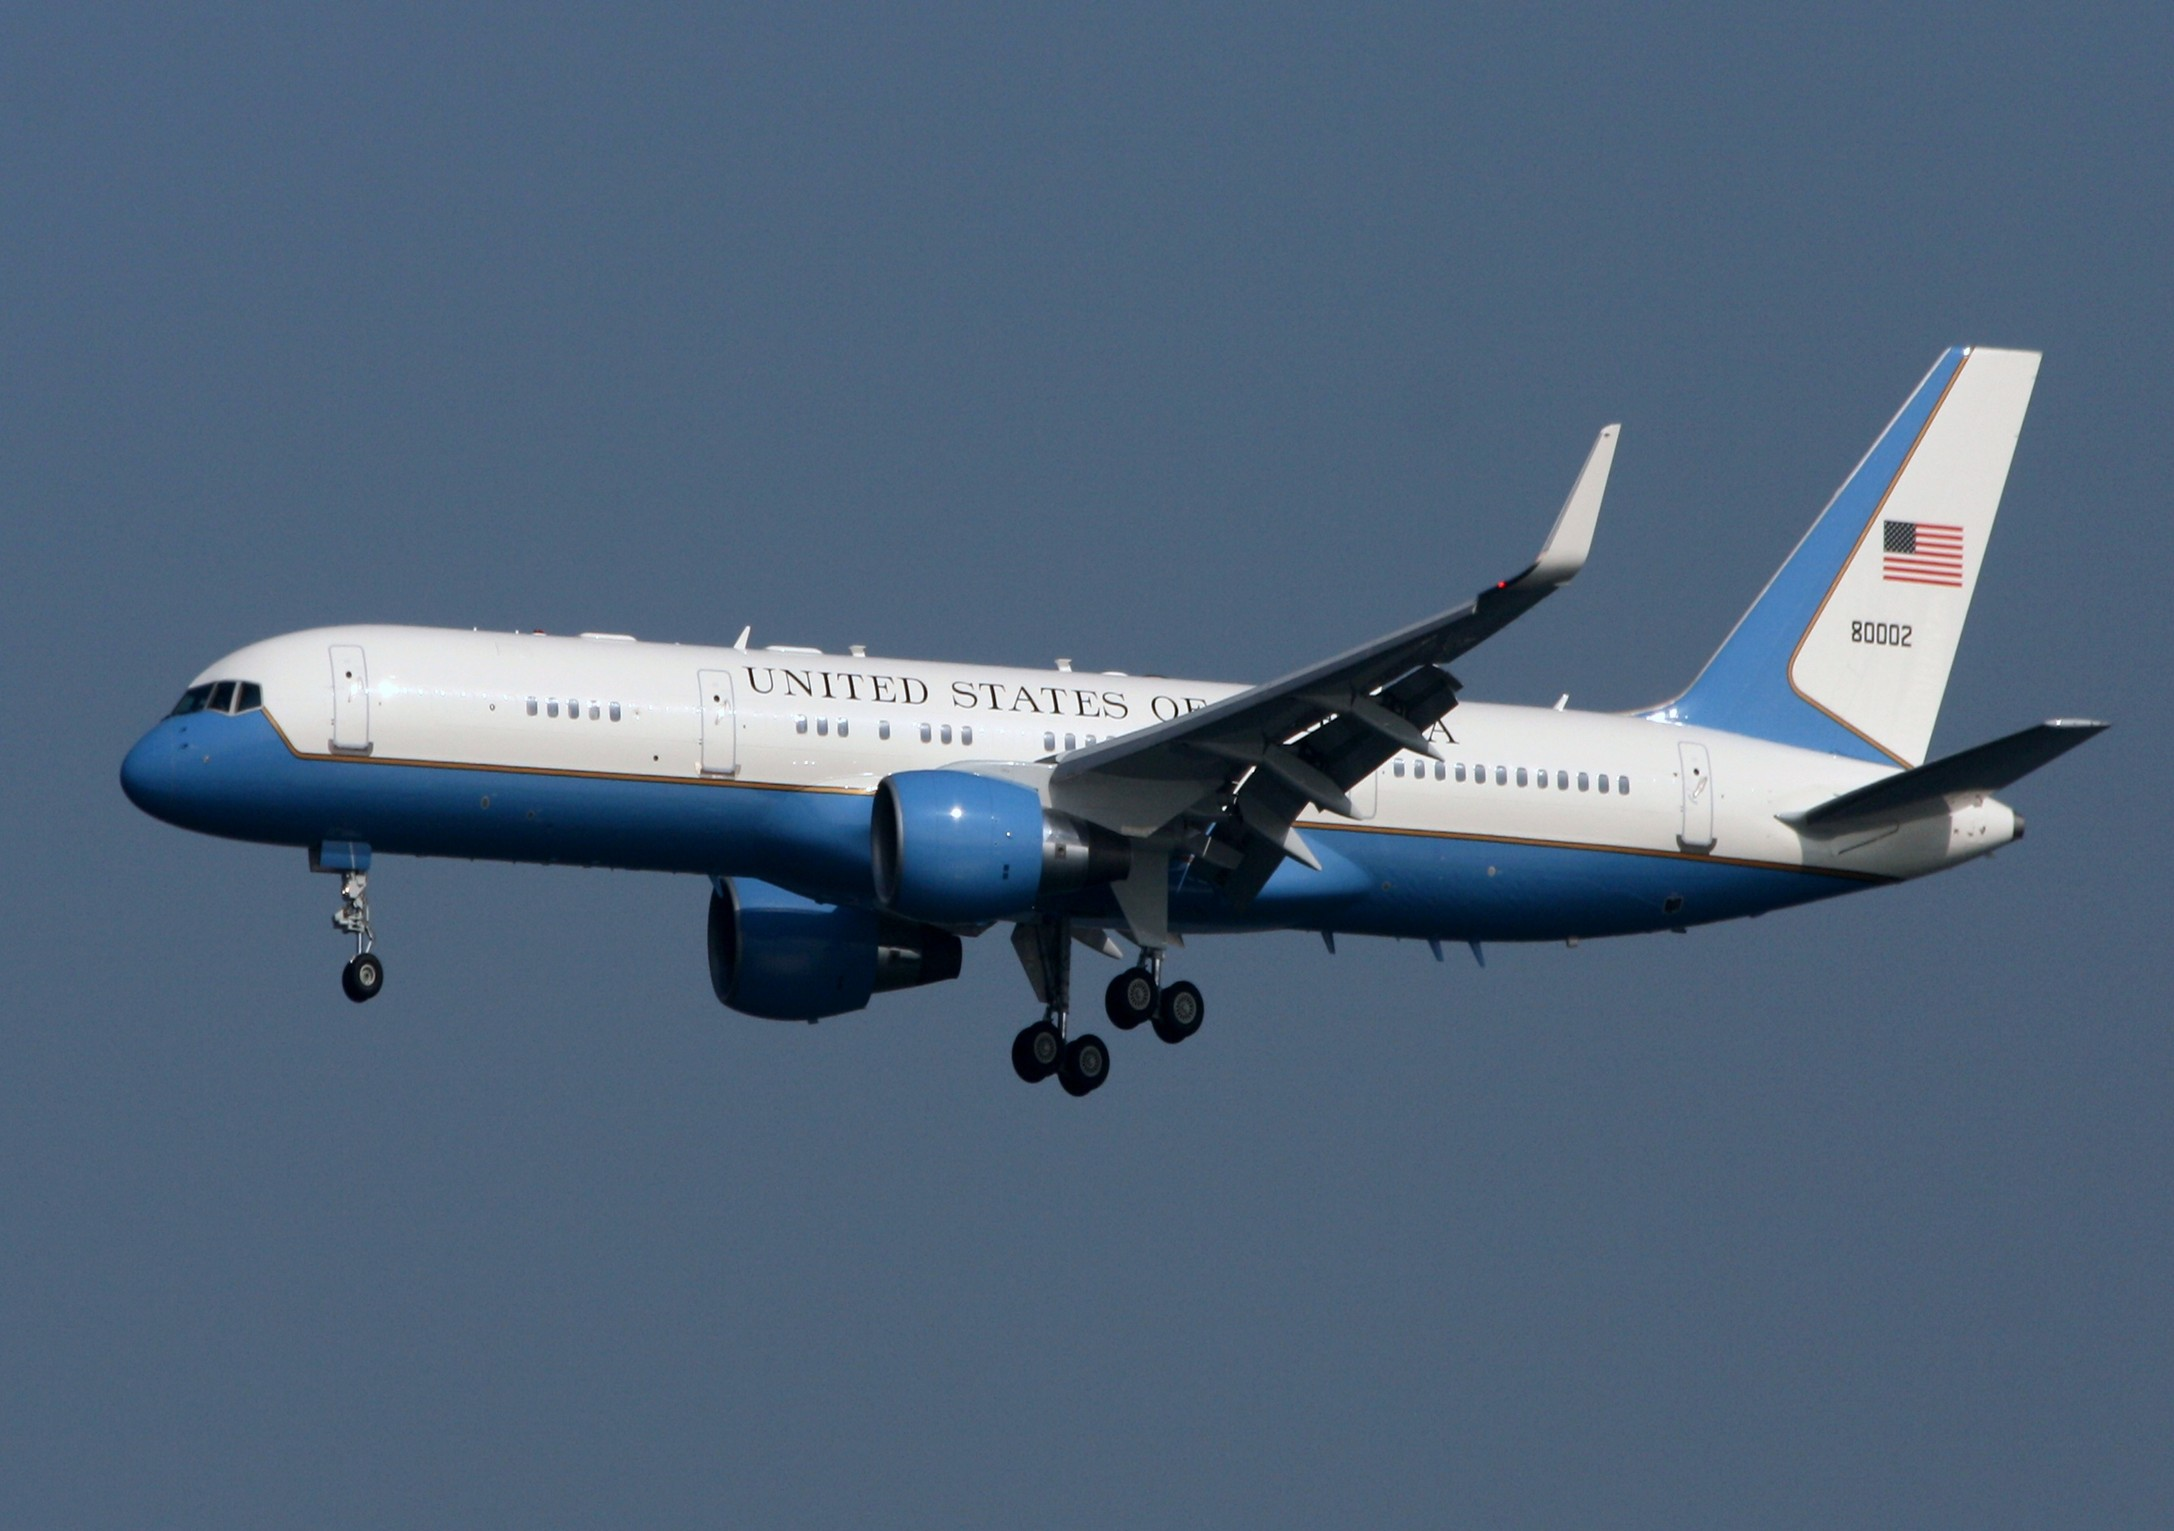 Obama Takes Two Air Force One Planes To Argentina For